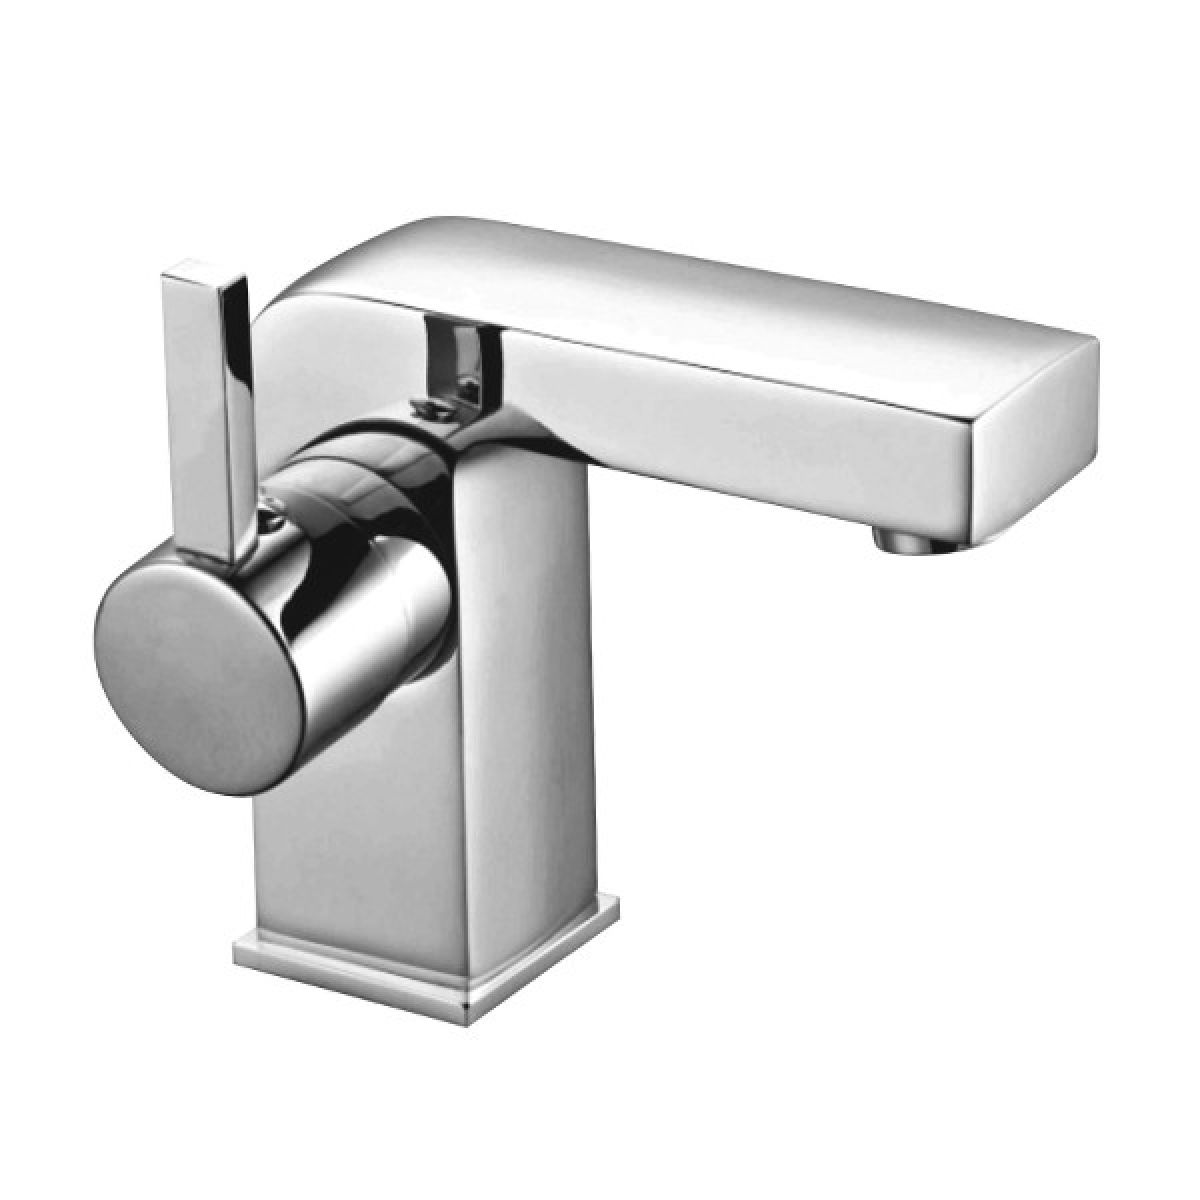 Frontline Pano Mono Basin Mixer Tap with Click Clack Waste